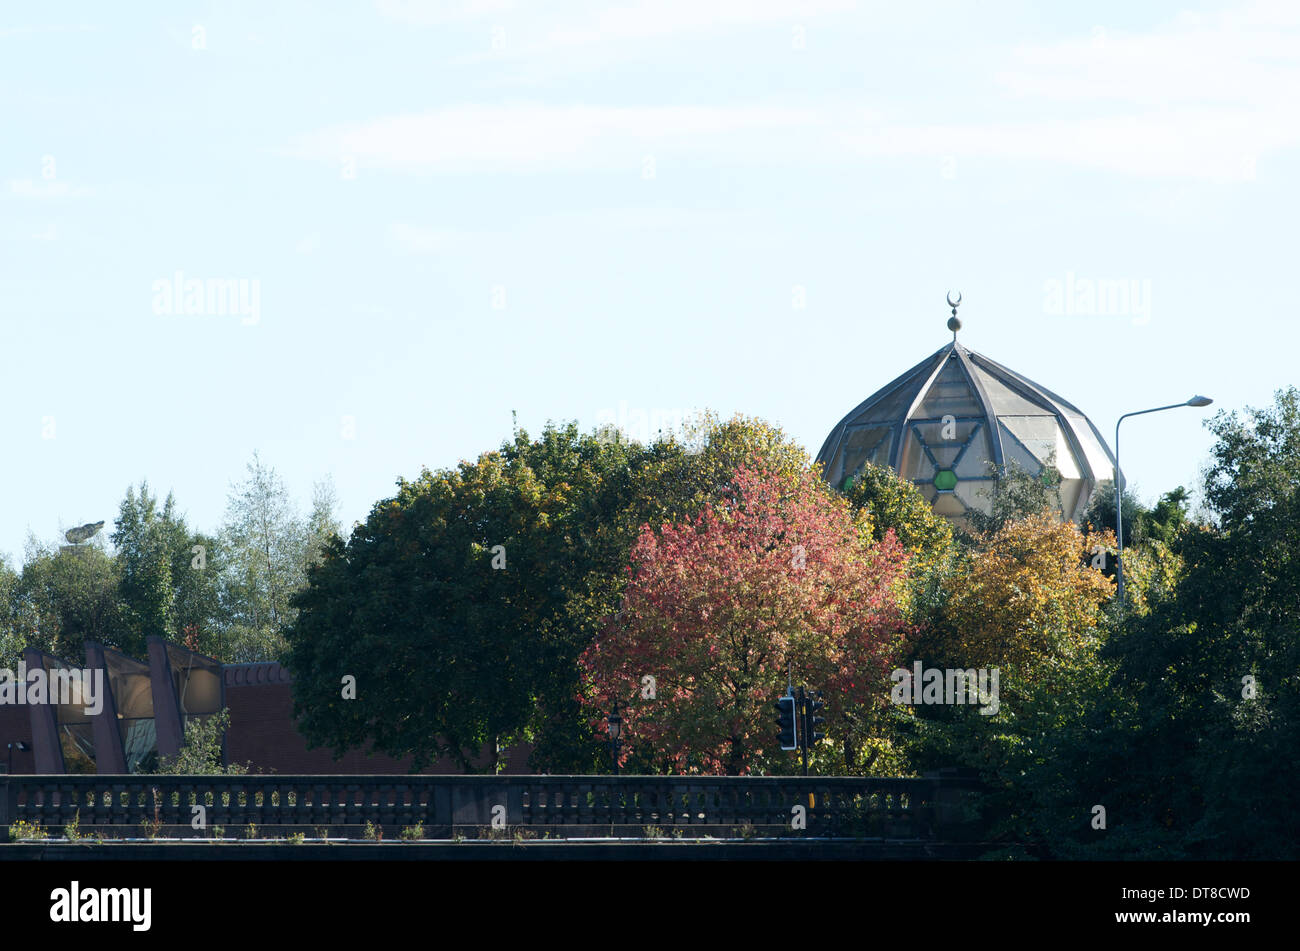 The Dome of Glasgow's Central Mosque rises above its surrounding trees. - Stock Image